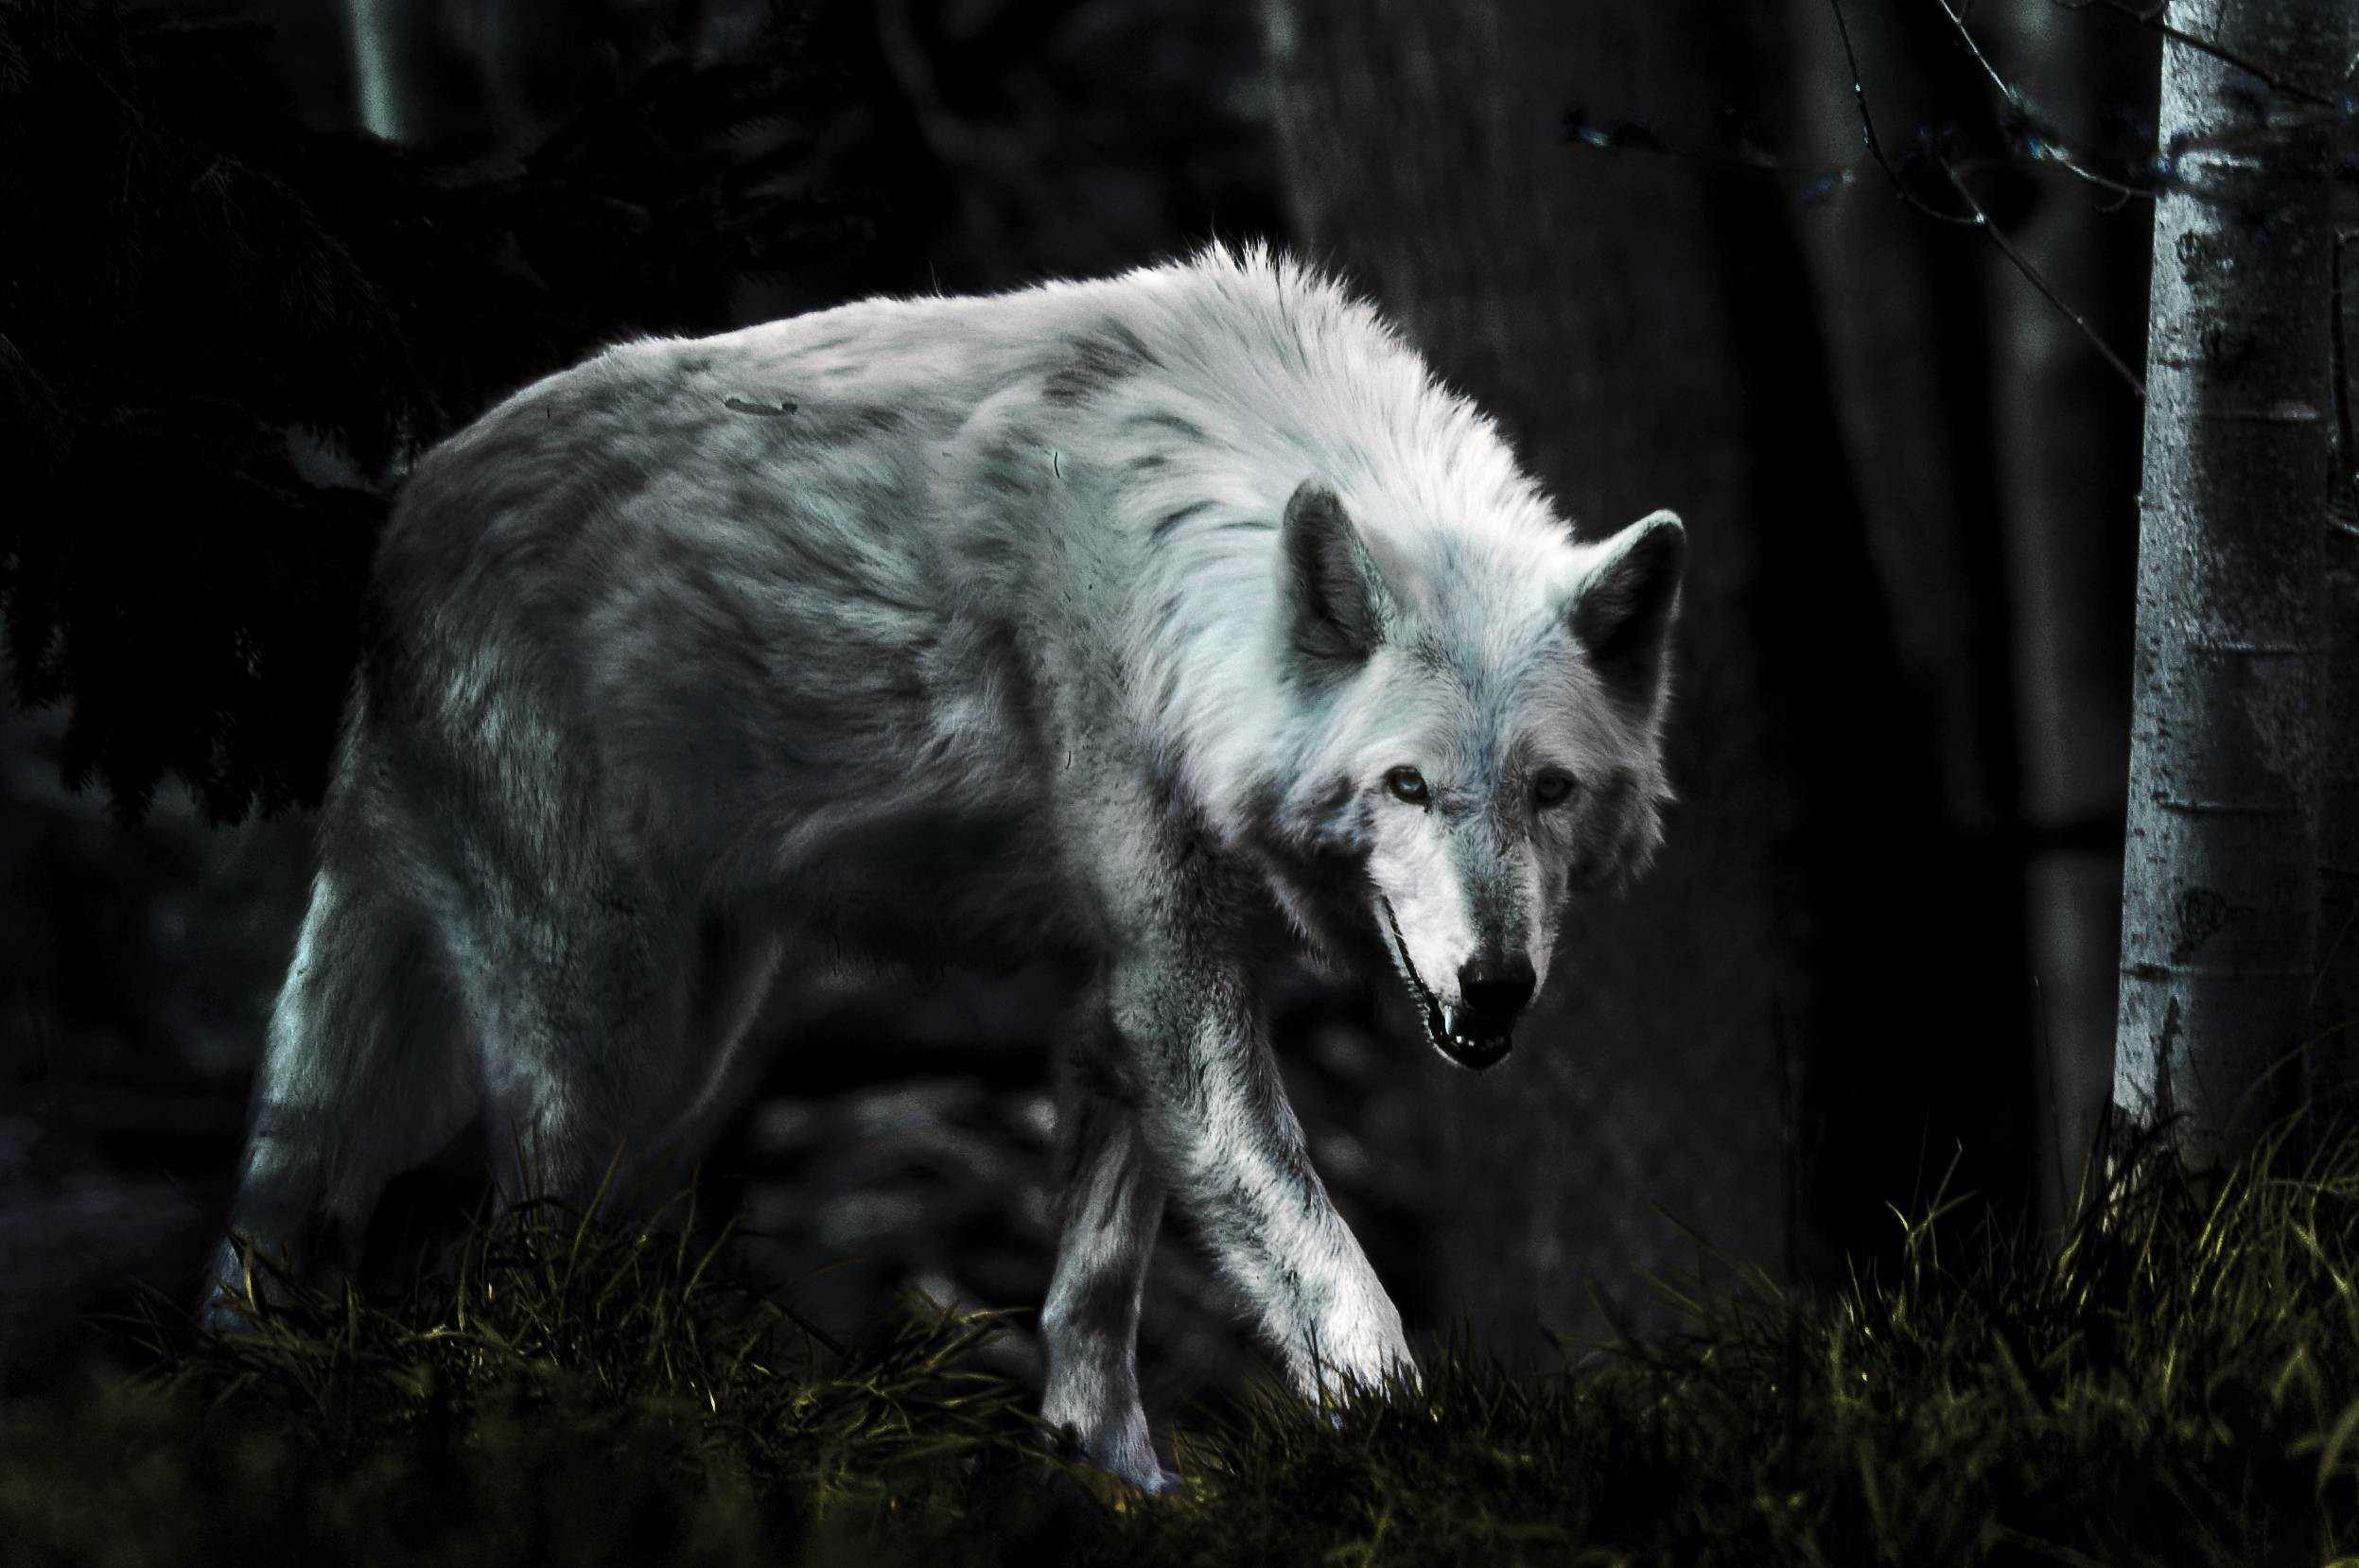 2494x1658 Dark Wolf HD Photo Wallpaper - HD Wallpapers|WallForU.com